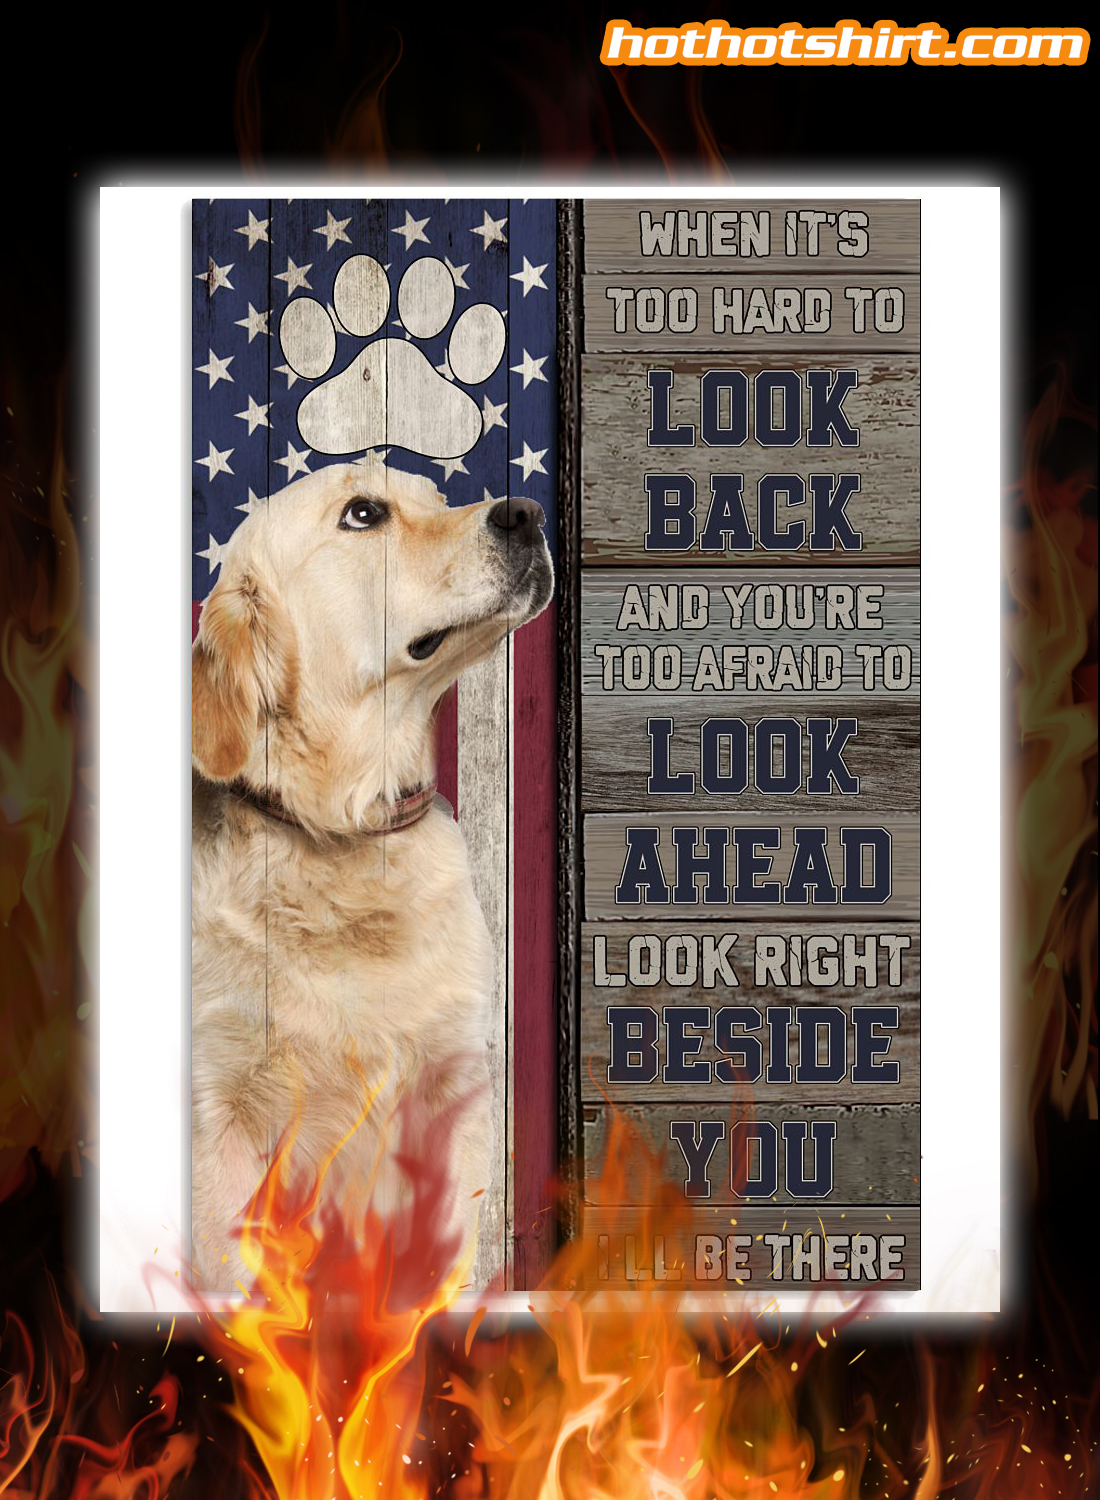 Golden Retriever when it's too hard to look back poster